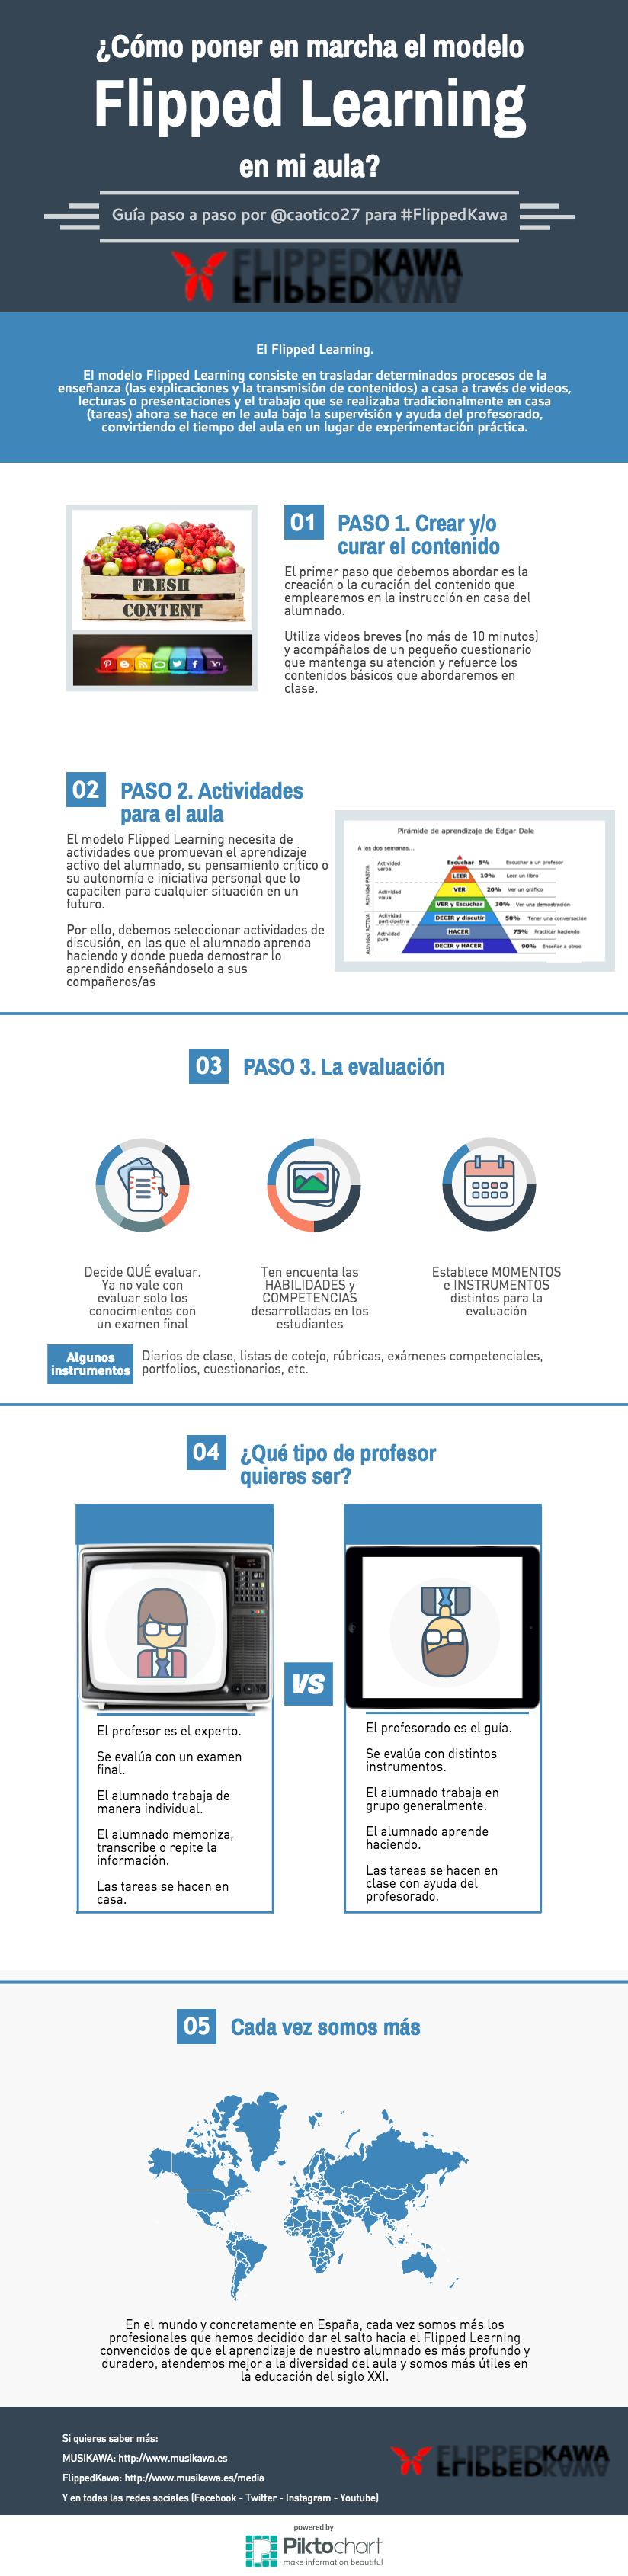 flipped-learning_infograf_2